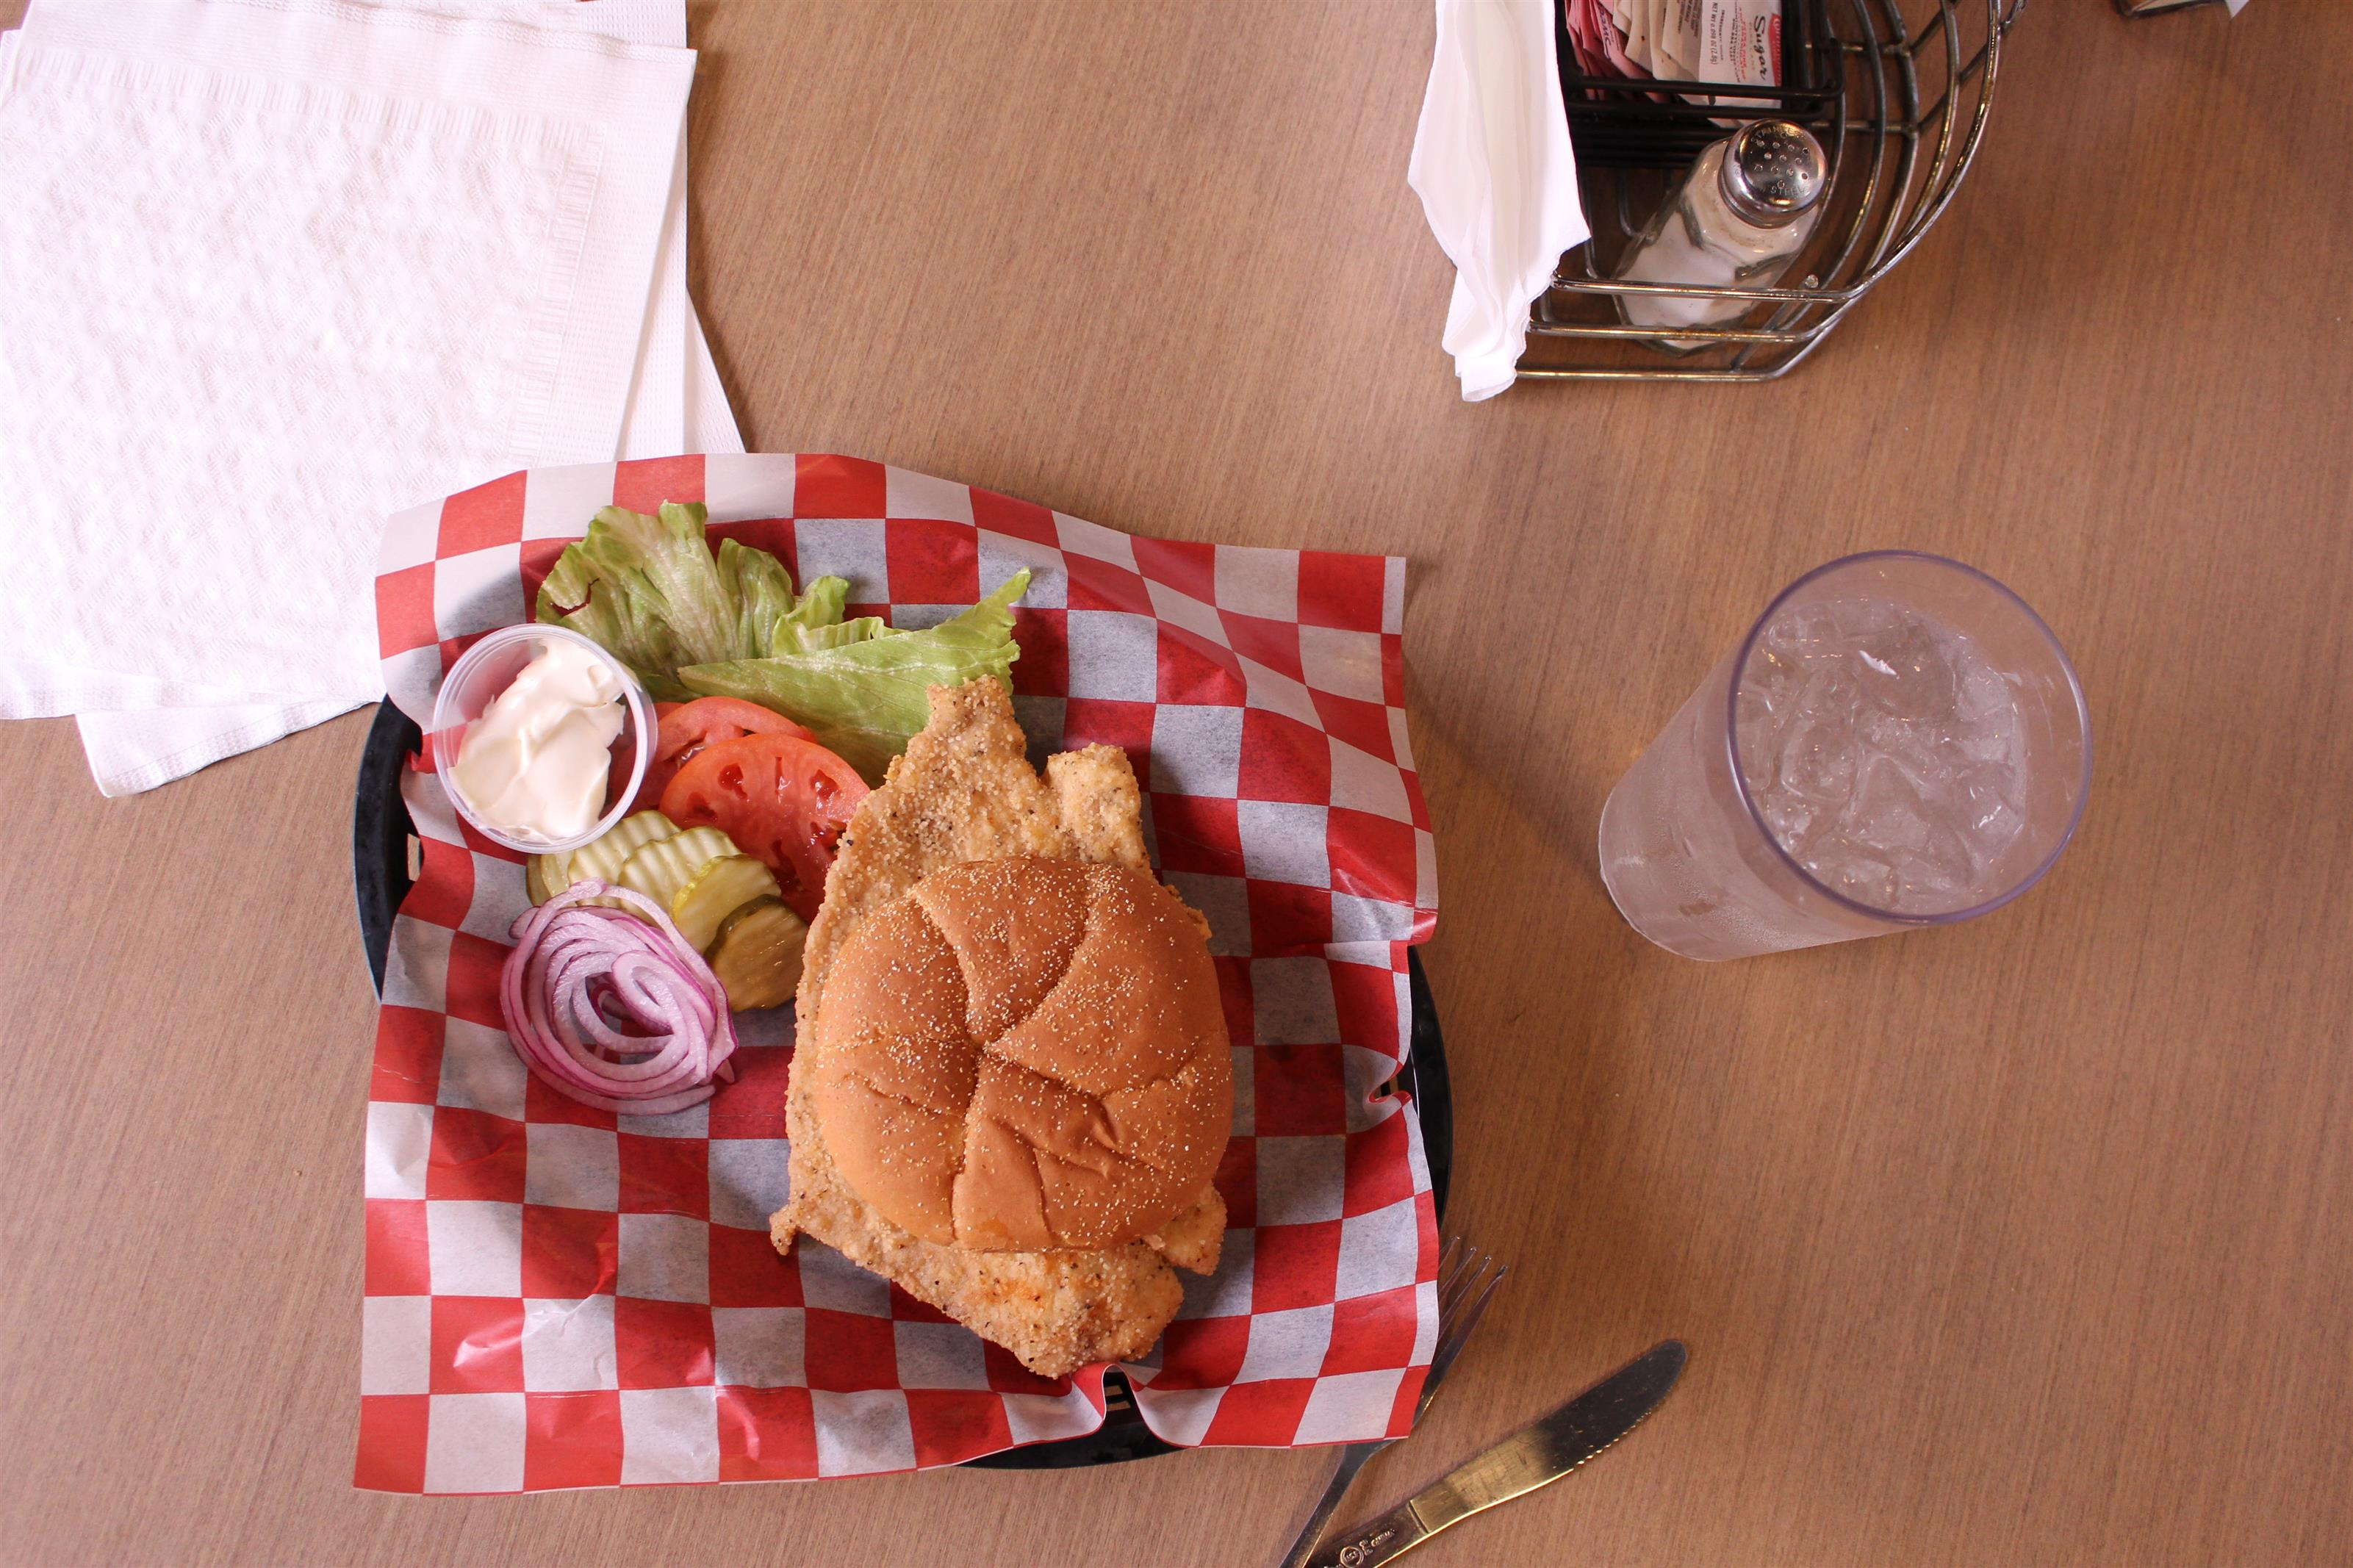 fried chicken sandwich with greens to the side